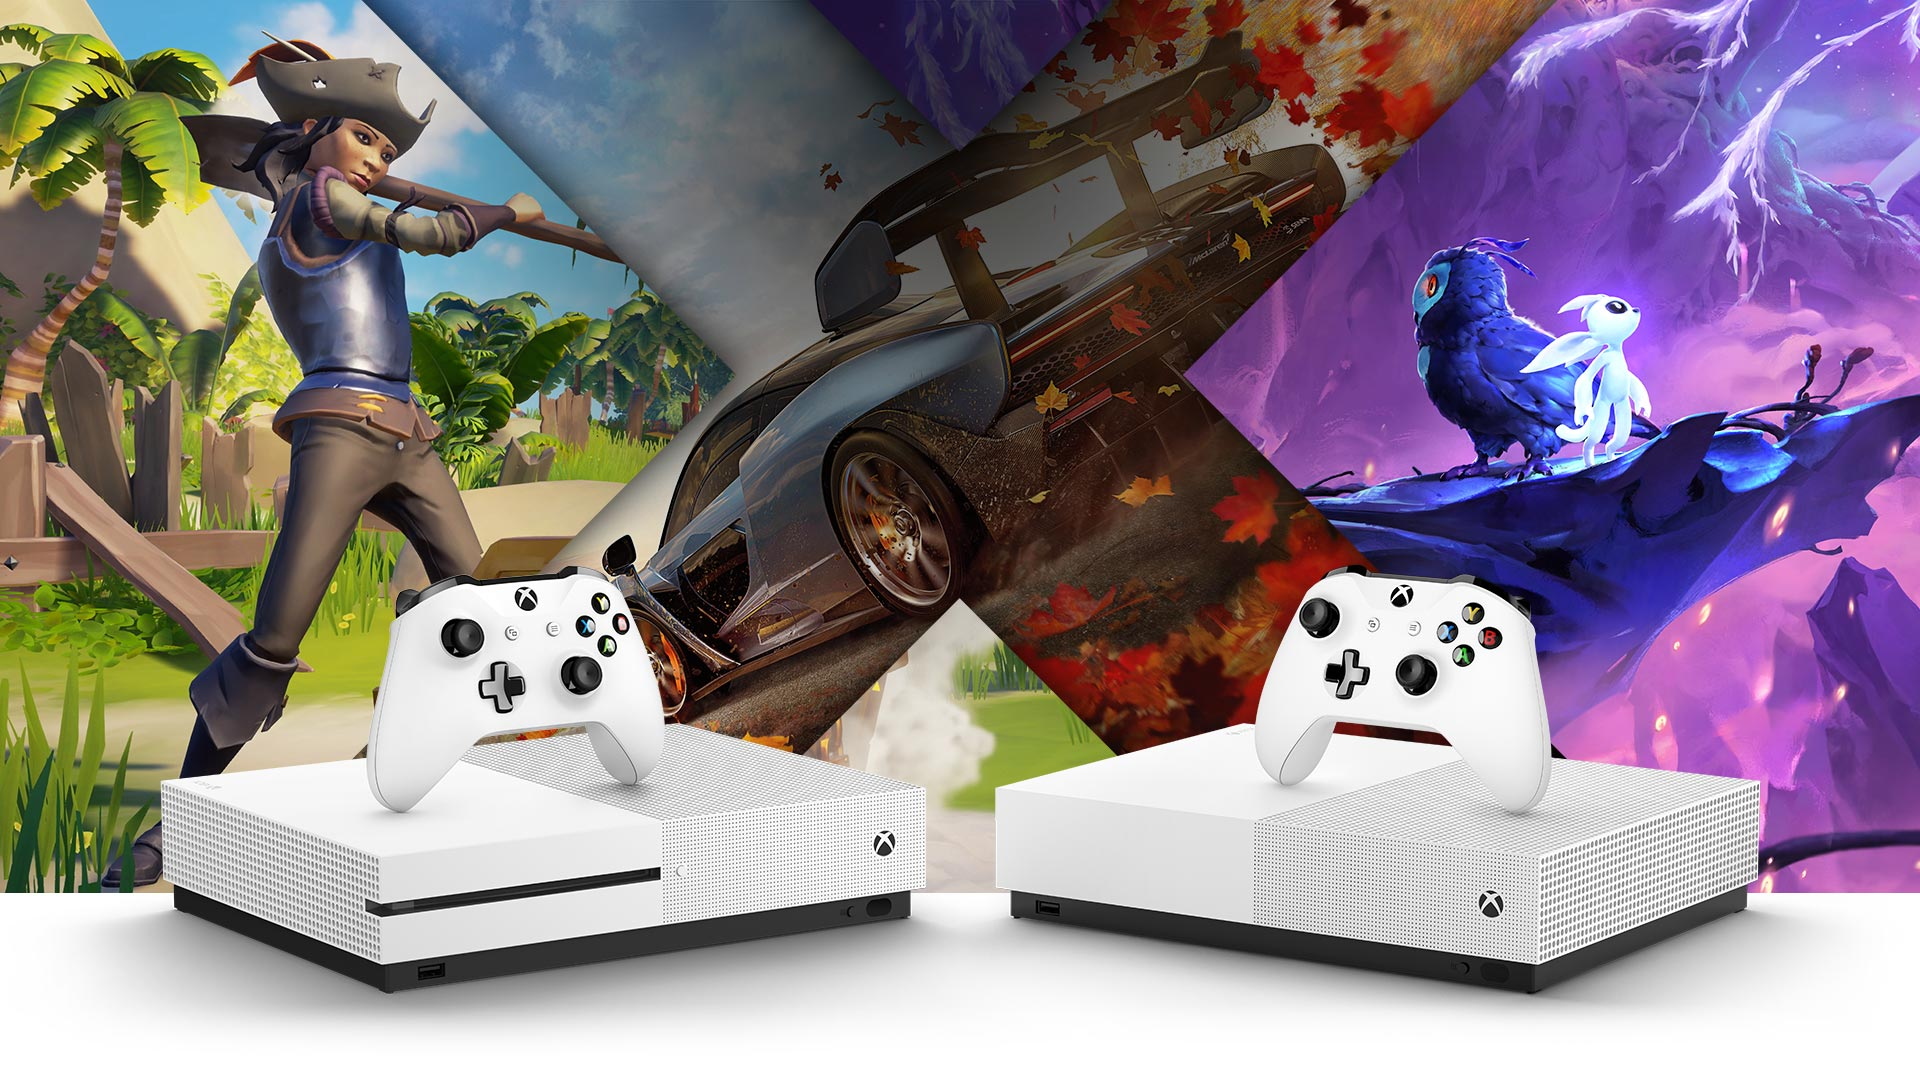 Vista frontal de la consola Xbox One S y la consola Xbox One S All-Digital Edition rodeadas de las ilustraciones de Sea of Thieves, Forza Horizon 4 y Ori and the Will of Wisps